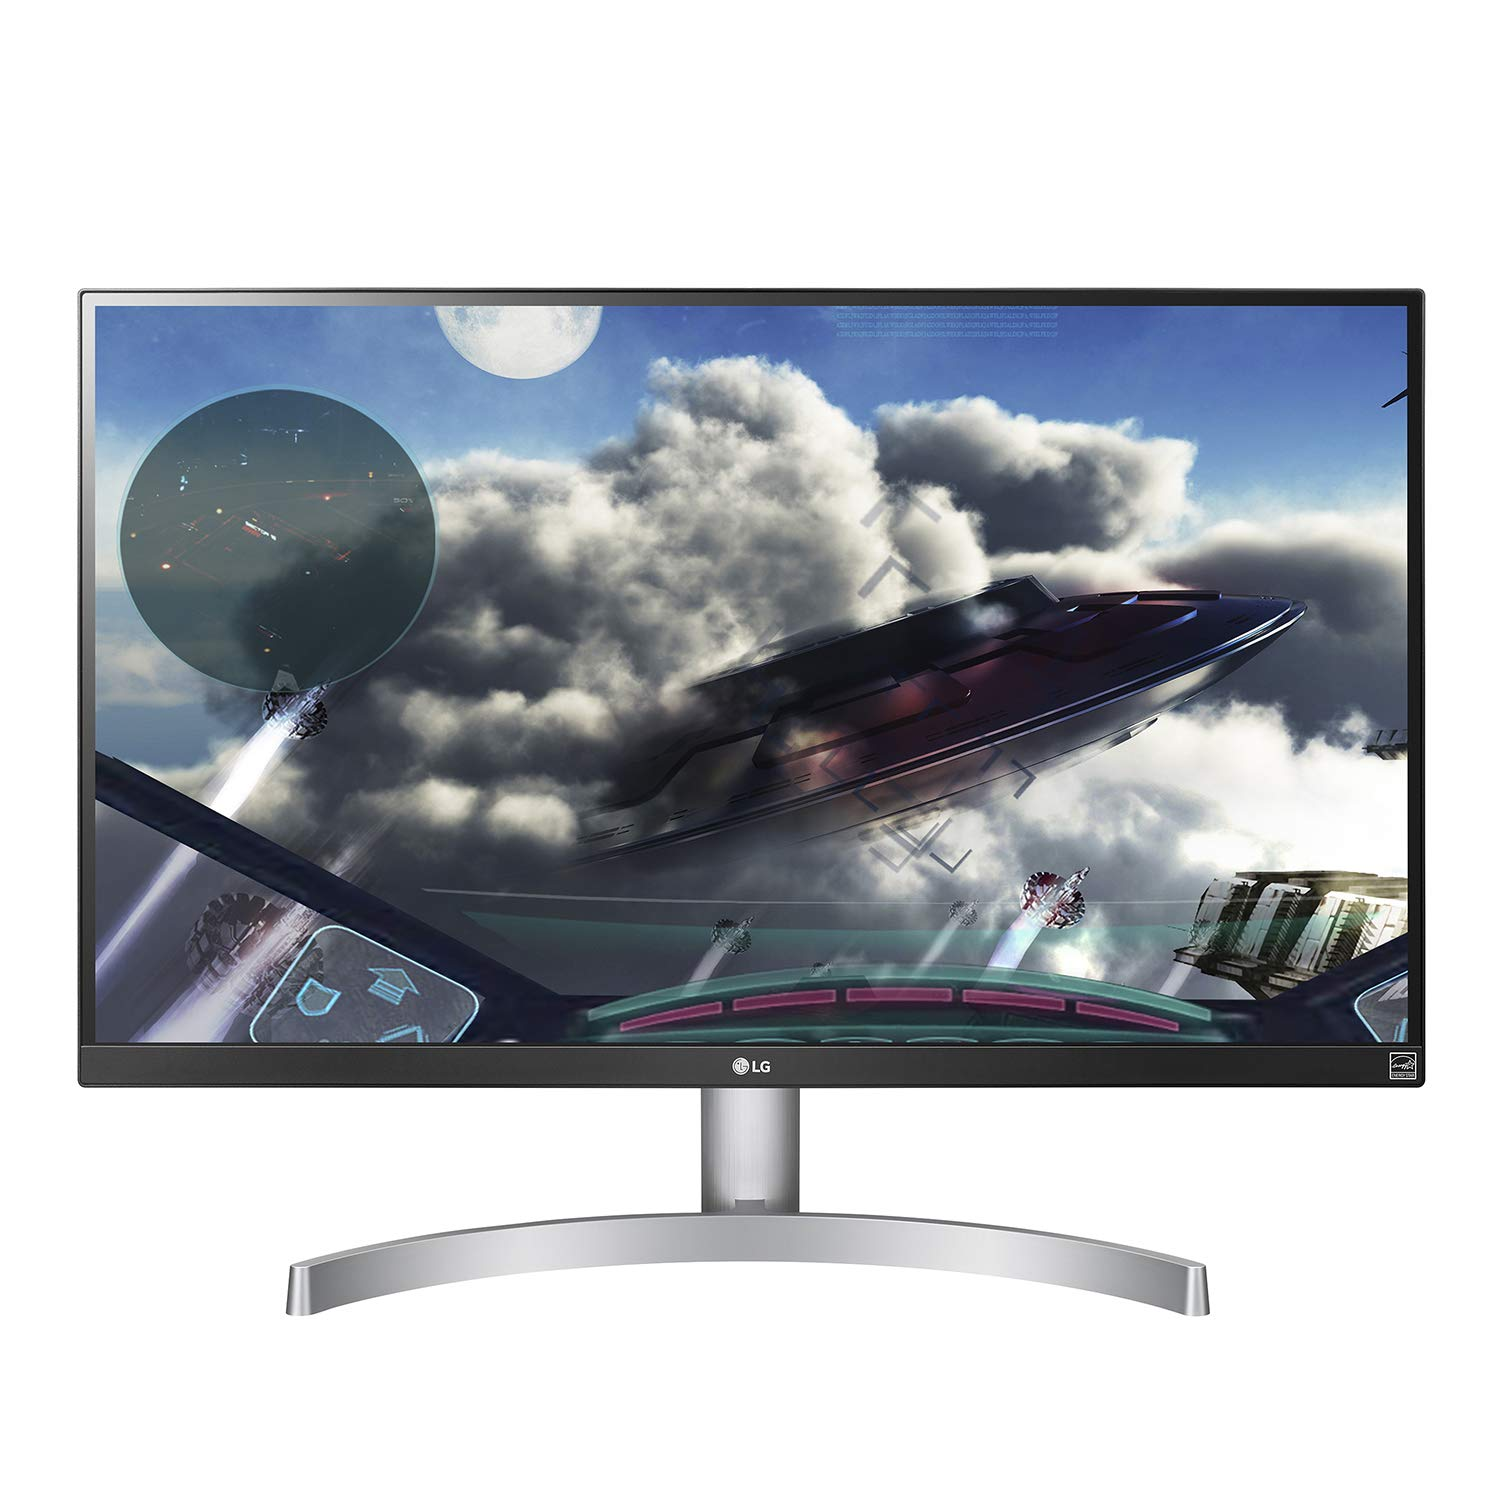 LG 27UK600 4K Monitor Black Friday Deal 2020